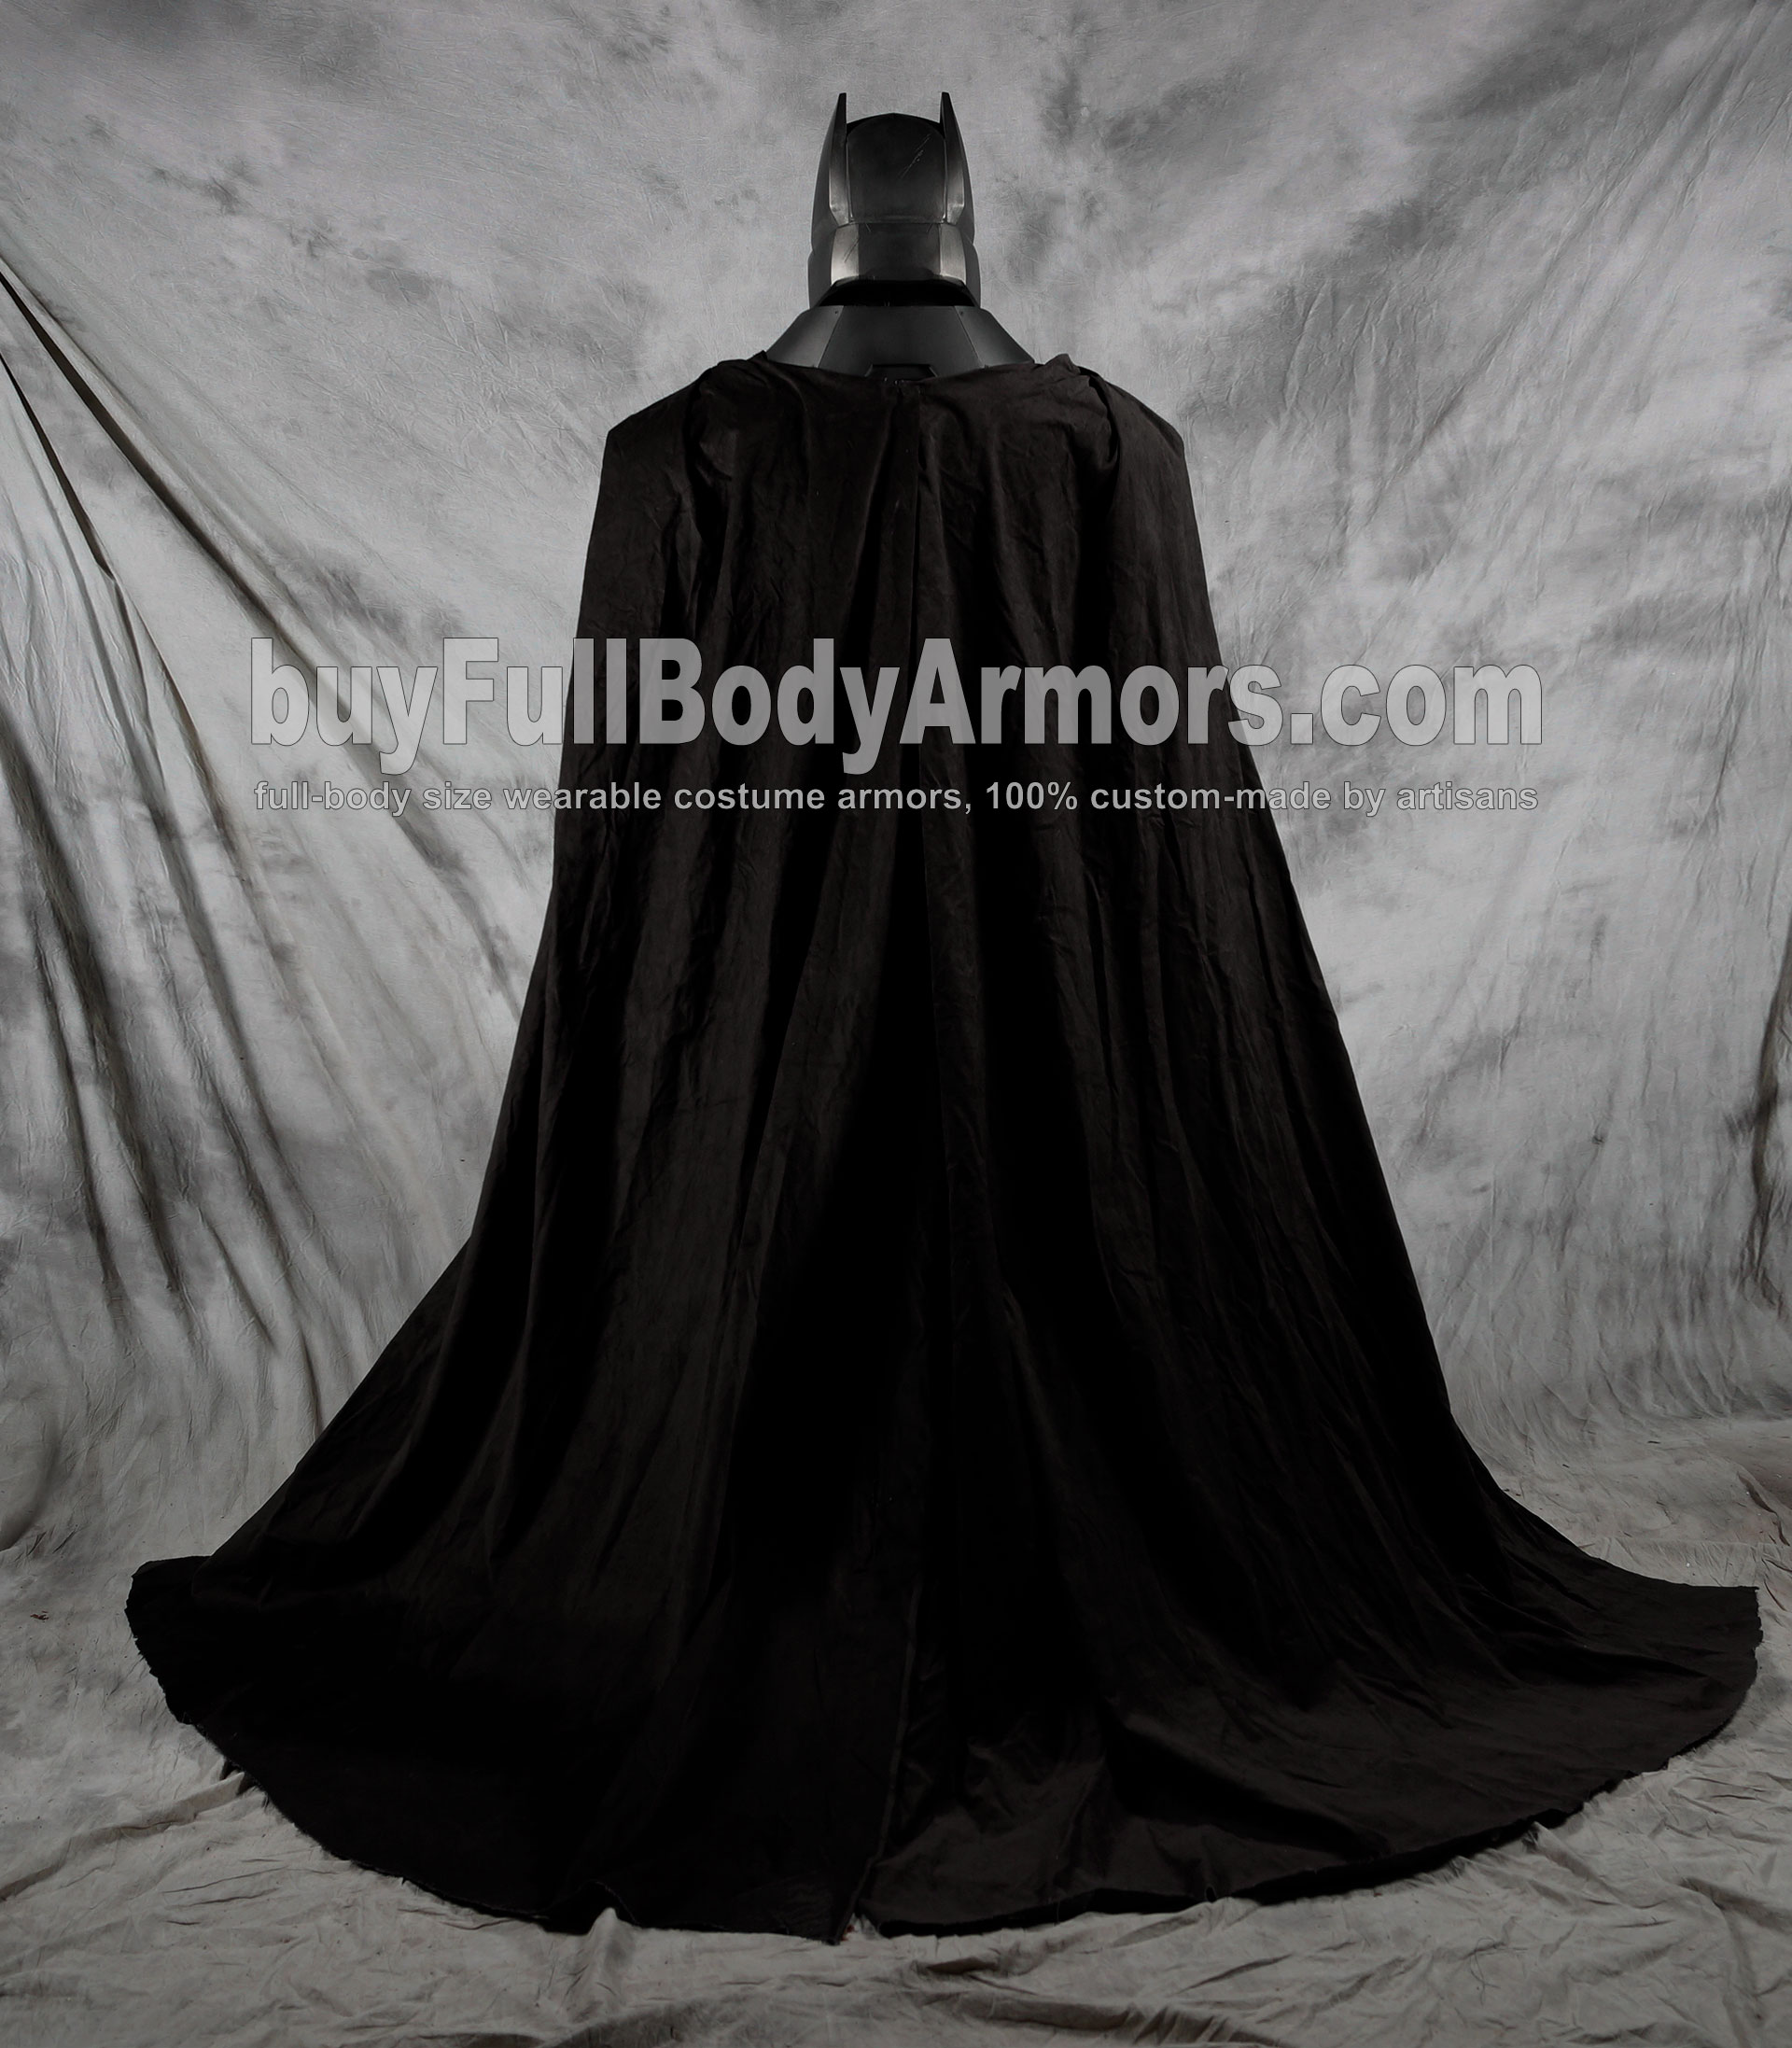 The Wearable Armored Batsuit (Batman armor suit costume) back